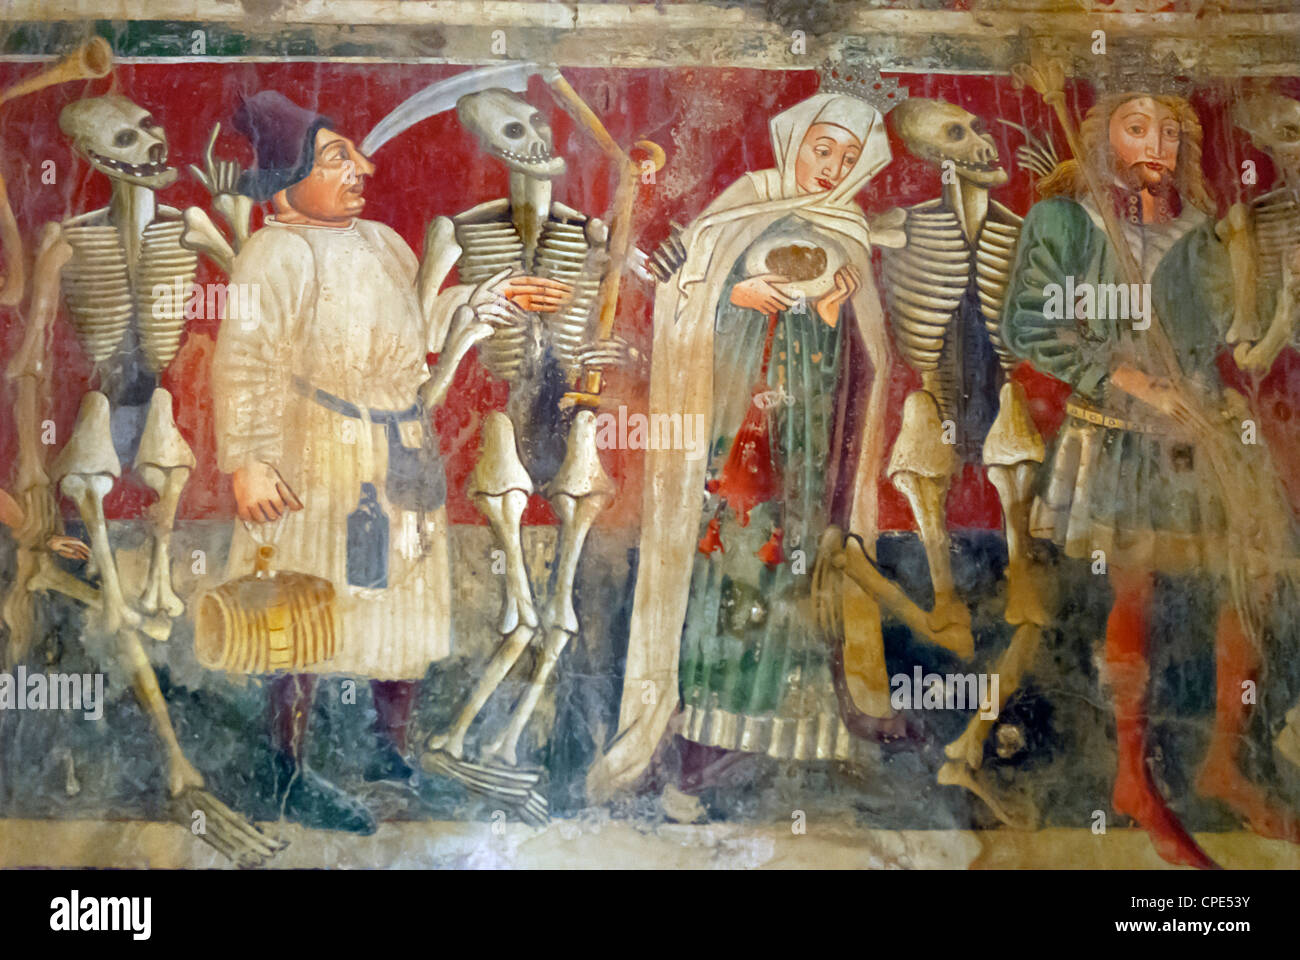 Detail of the Dance of Death fresco dating from 1475, Chapel of Our Lady of the Rocks, Beram, Istria, Croatia, Europe - Stock Image